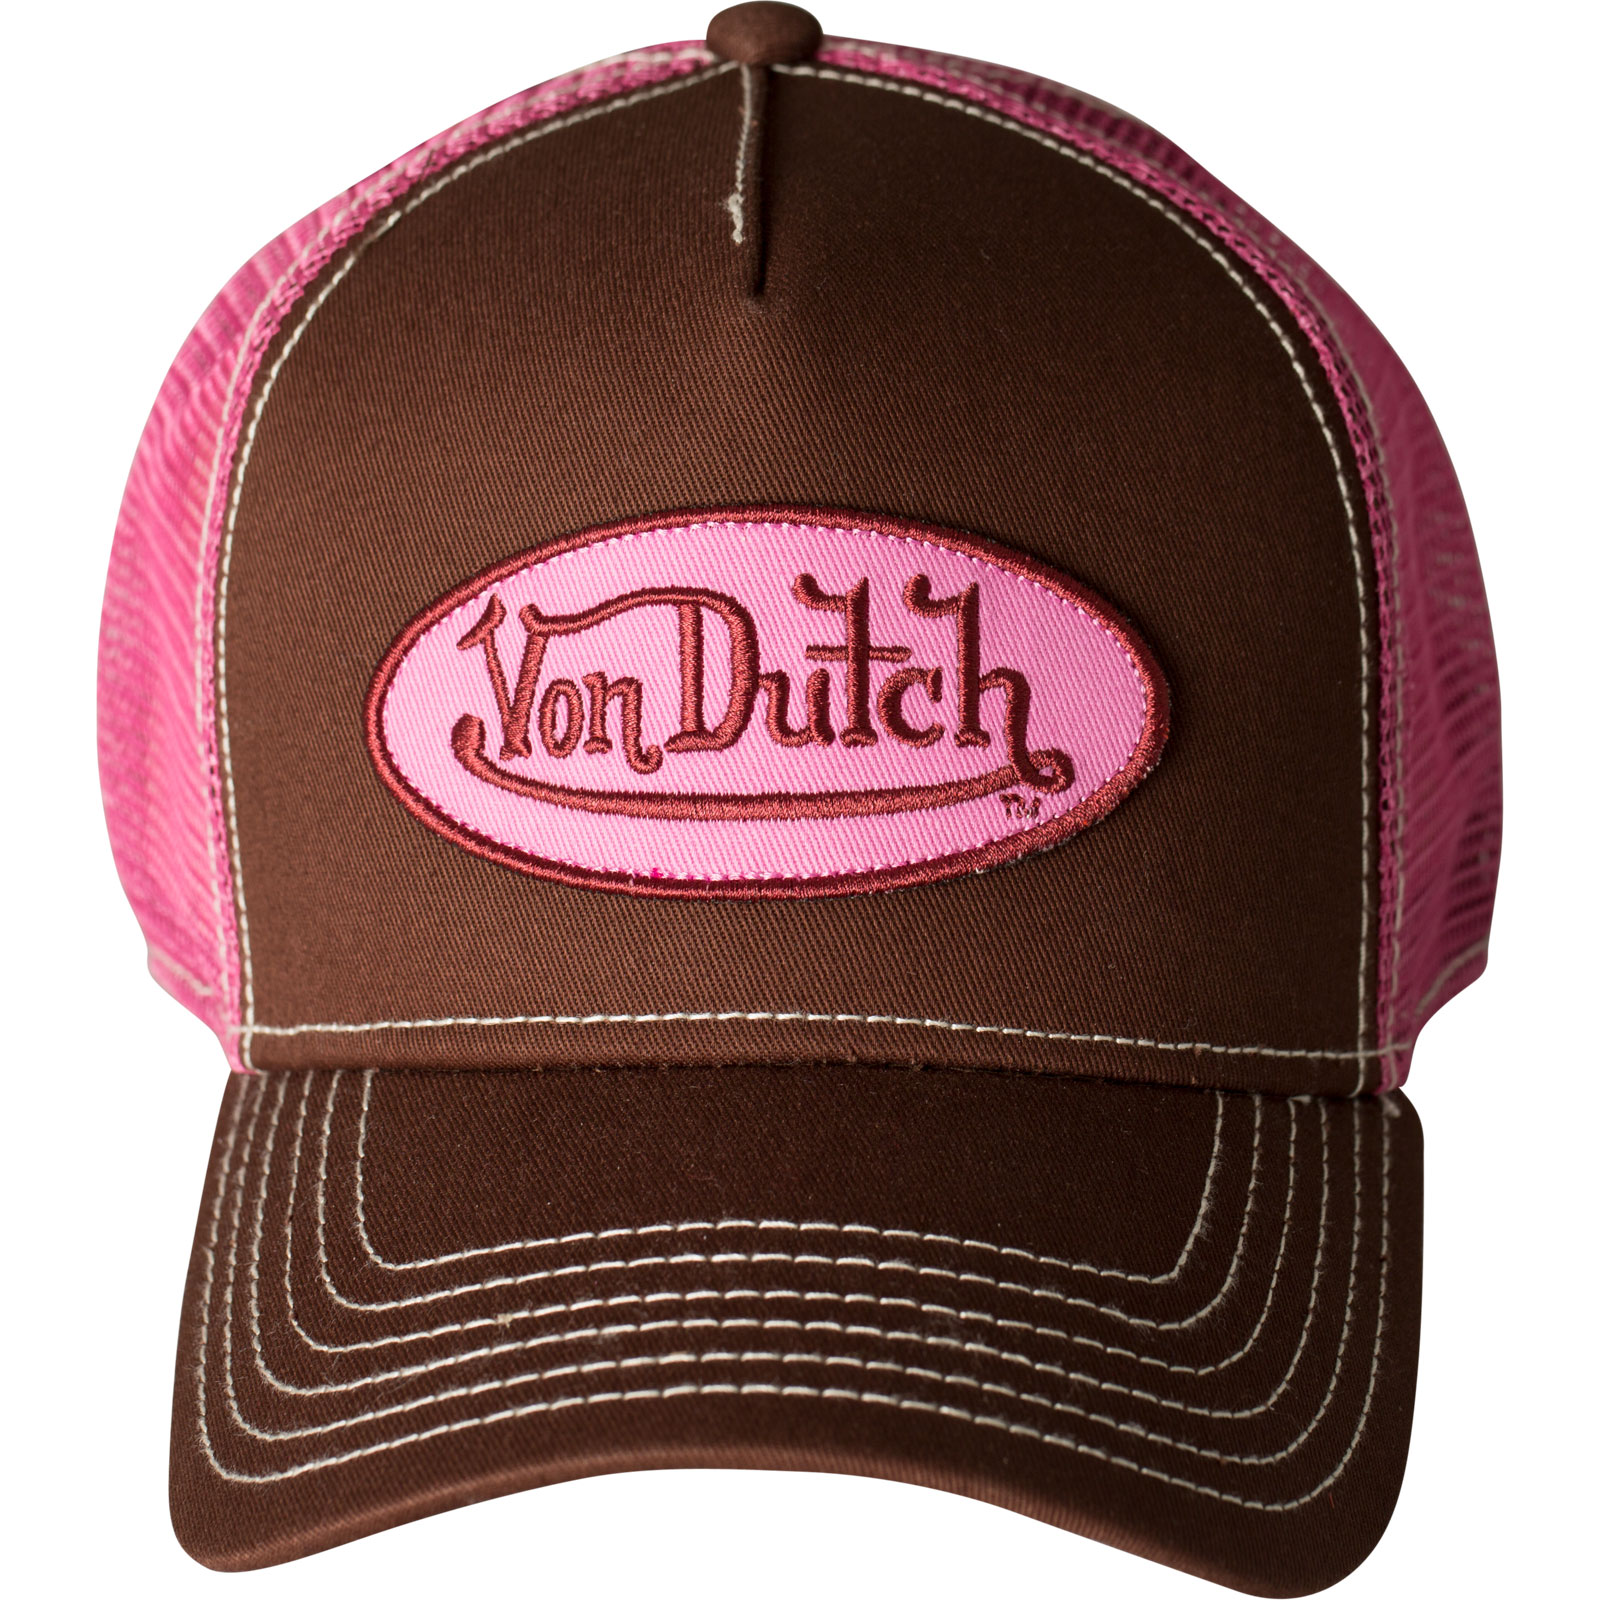 Von Dutch OG Trucker Cap with embroidered patch and midriff bcc5db20e66f